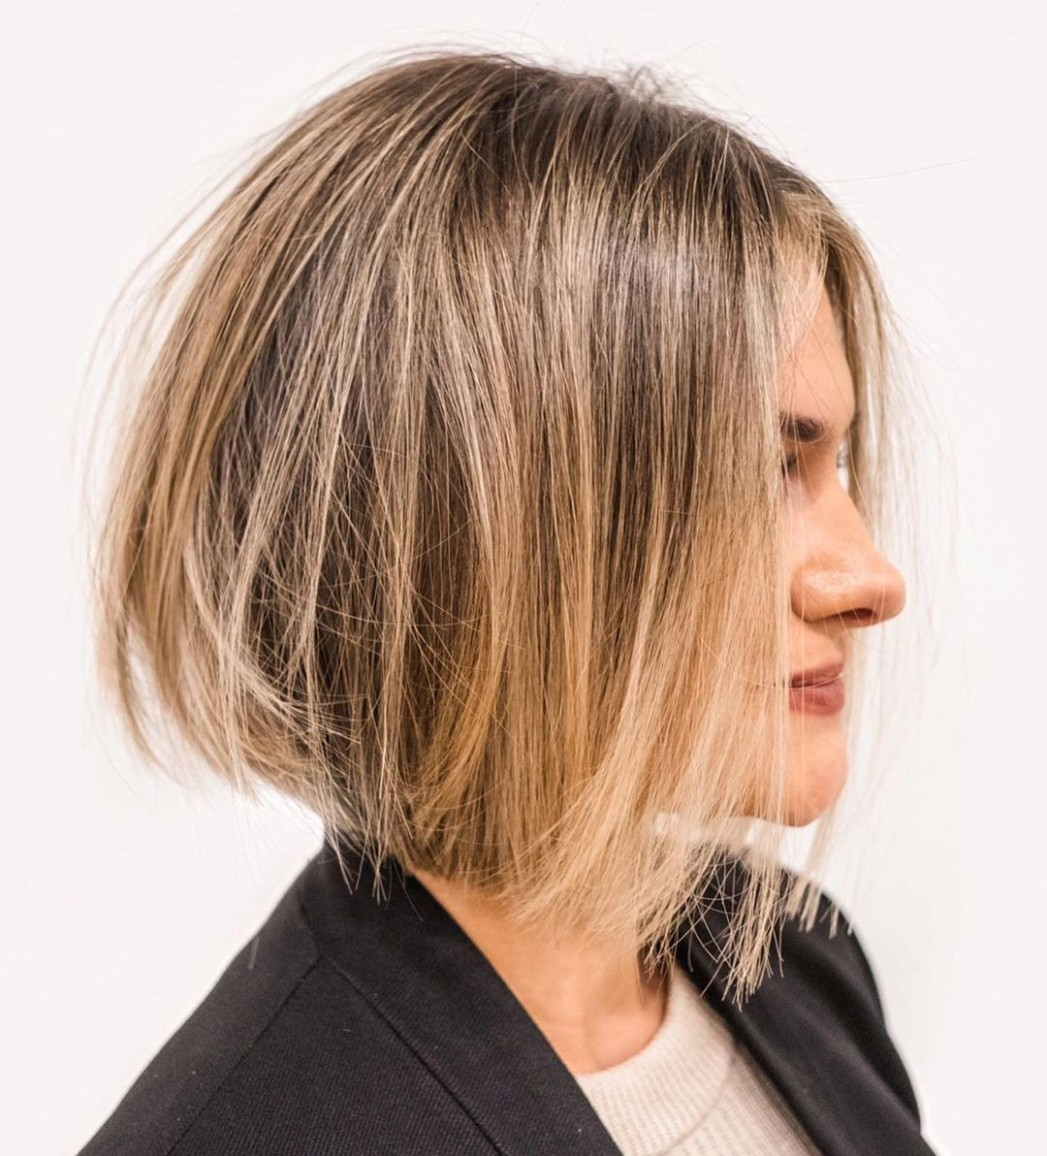 12 Blunt Cuts and Blunt Bobs That Are Dominating in 12 - Hair